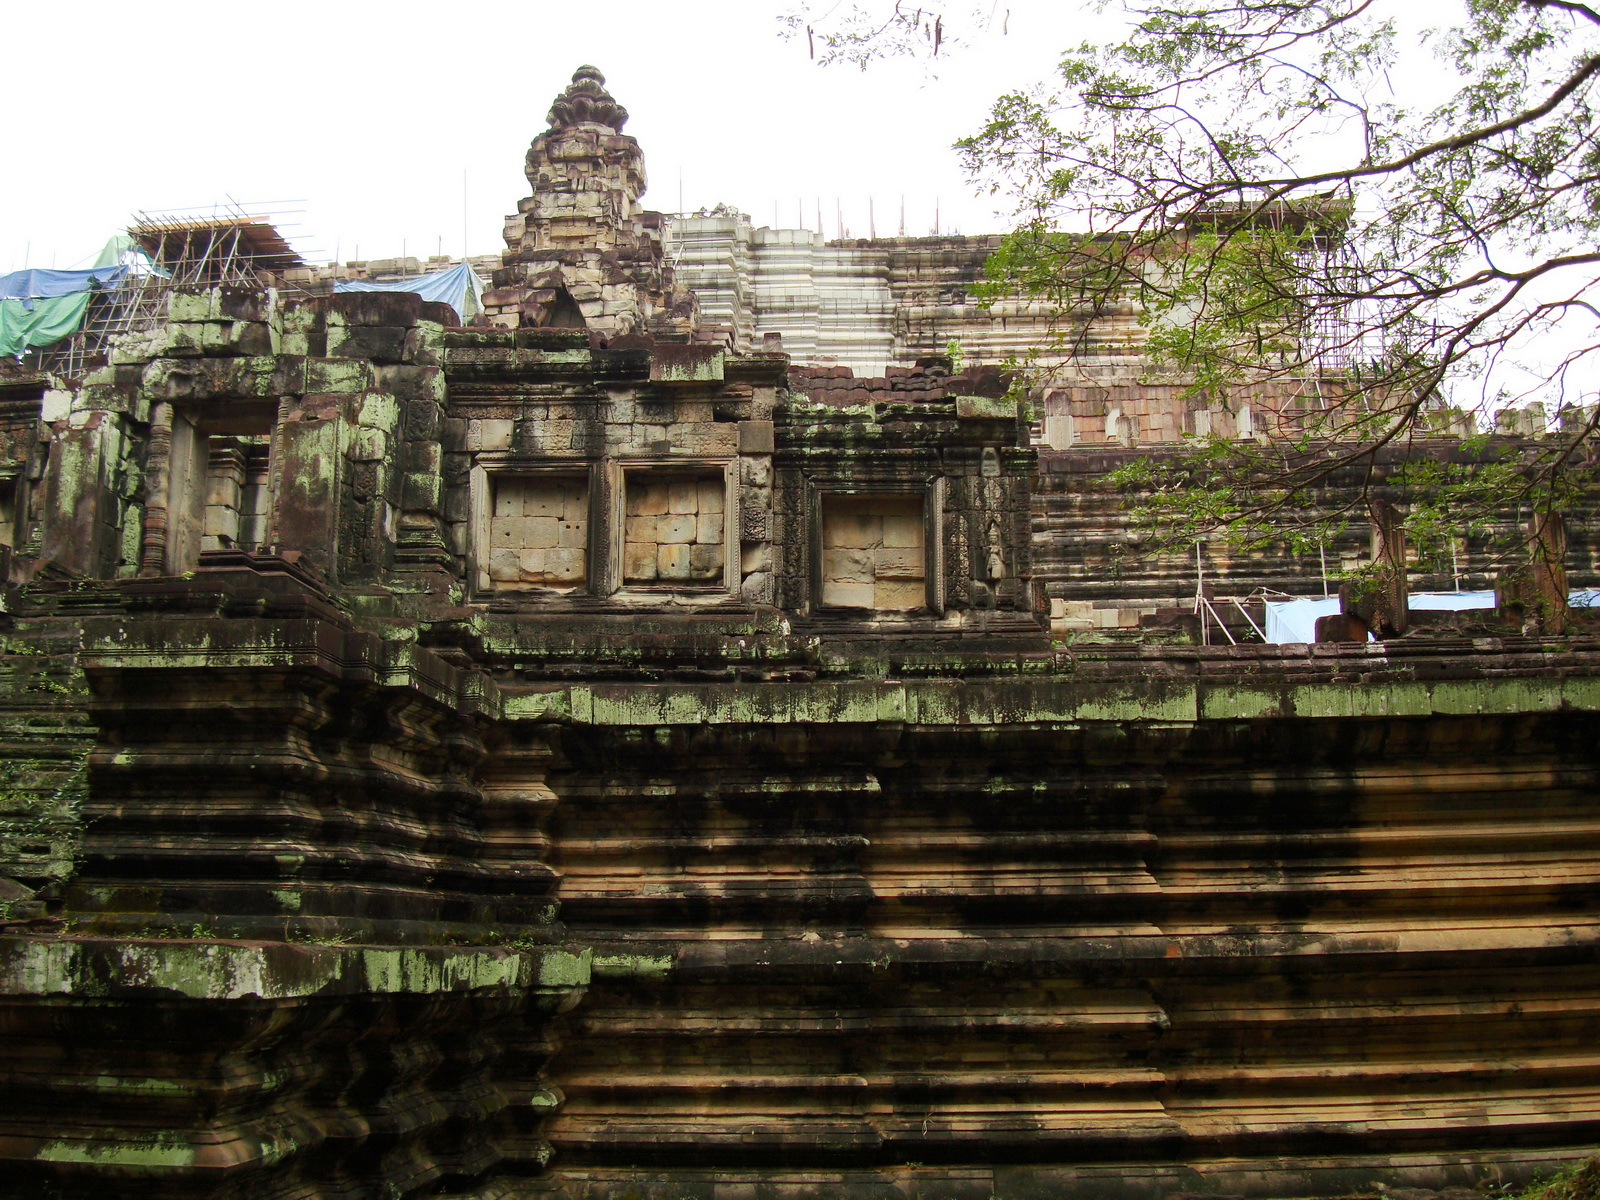 Baphuon temple Khmer style mid 11th century Angkor 06